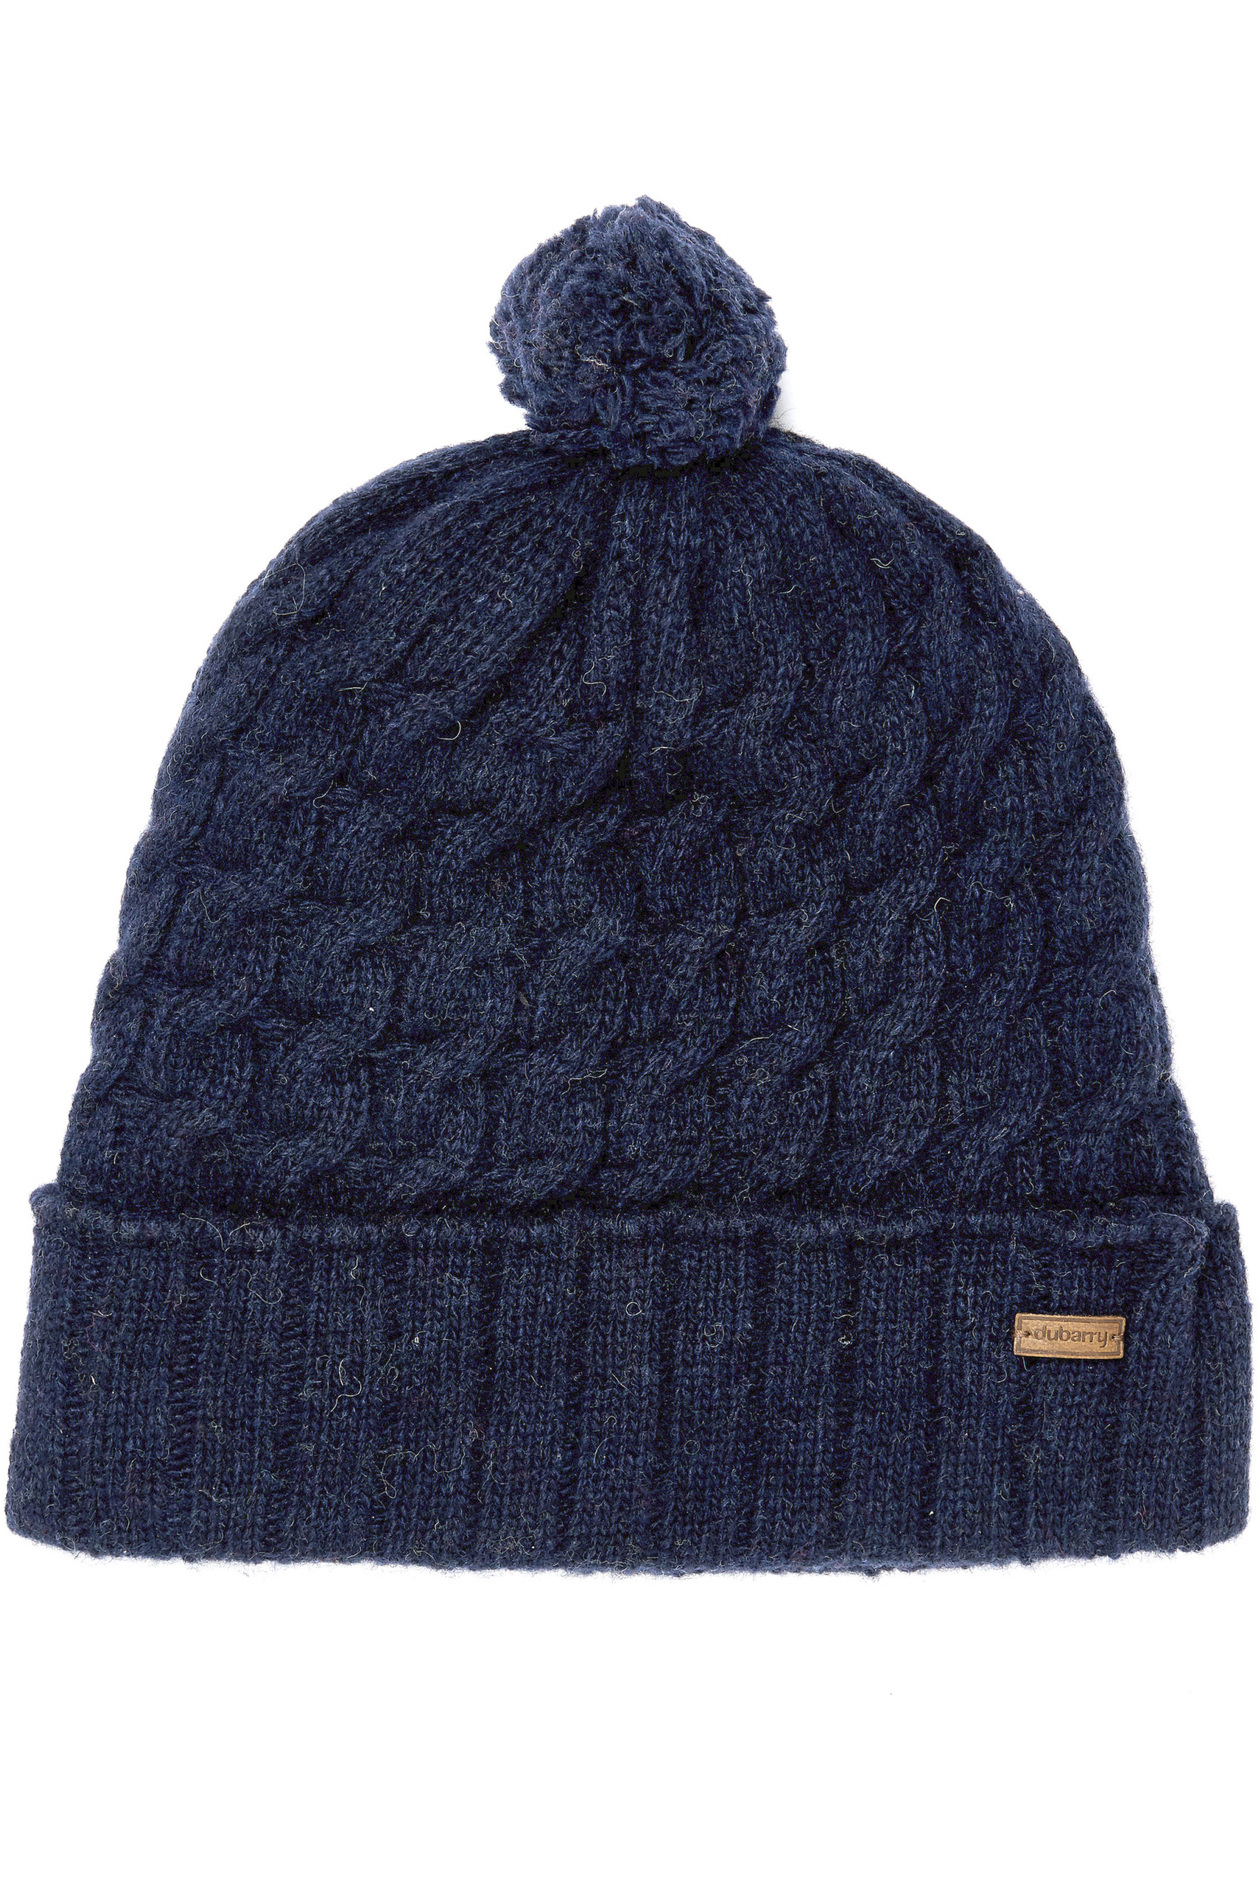 b8f1f658b21 ... promo code for dubarry athboy knited bobble hat navy 94c55 4db2d